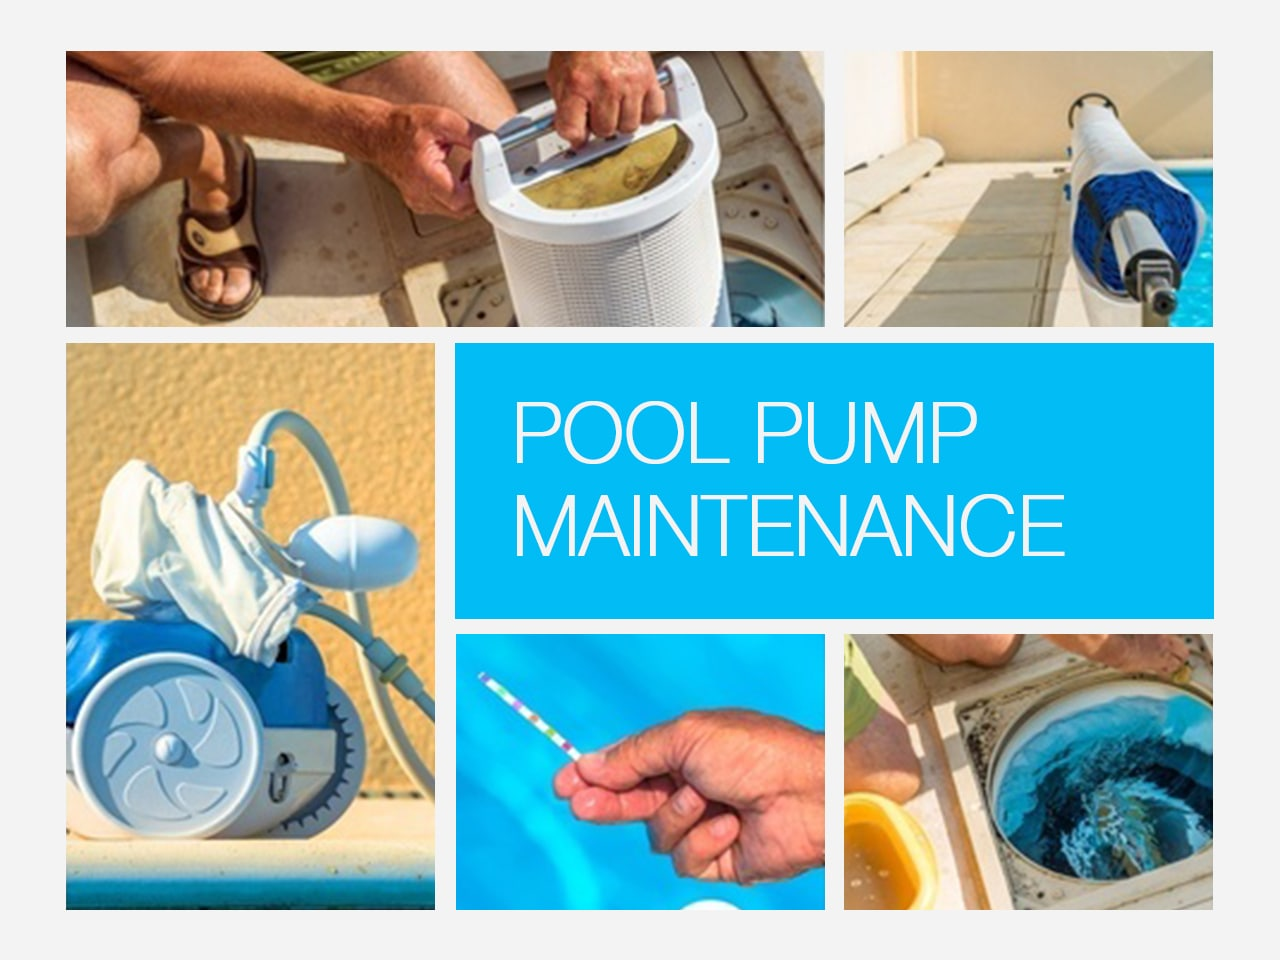 3 diy steps to determine pool pump cycle duration in hours